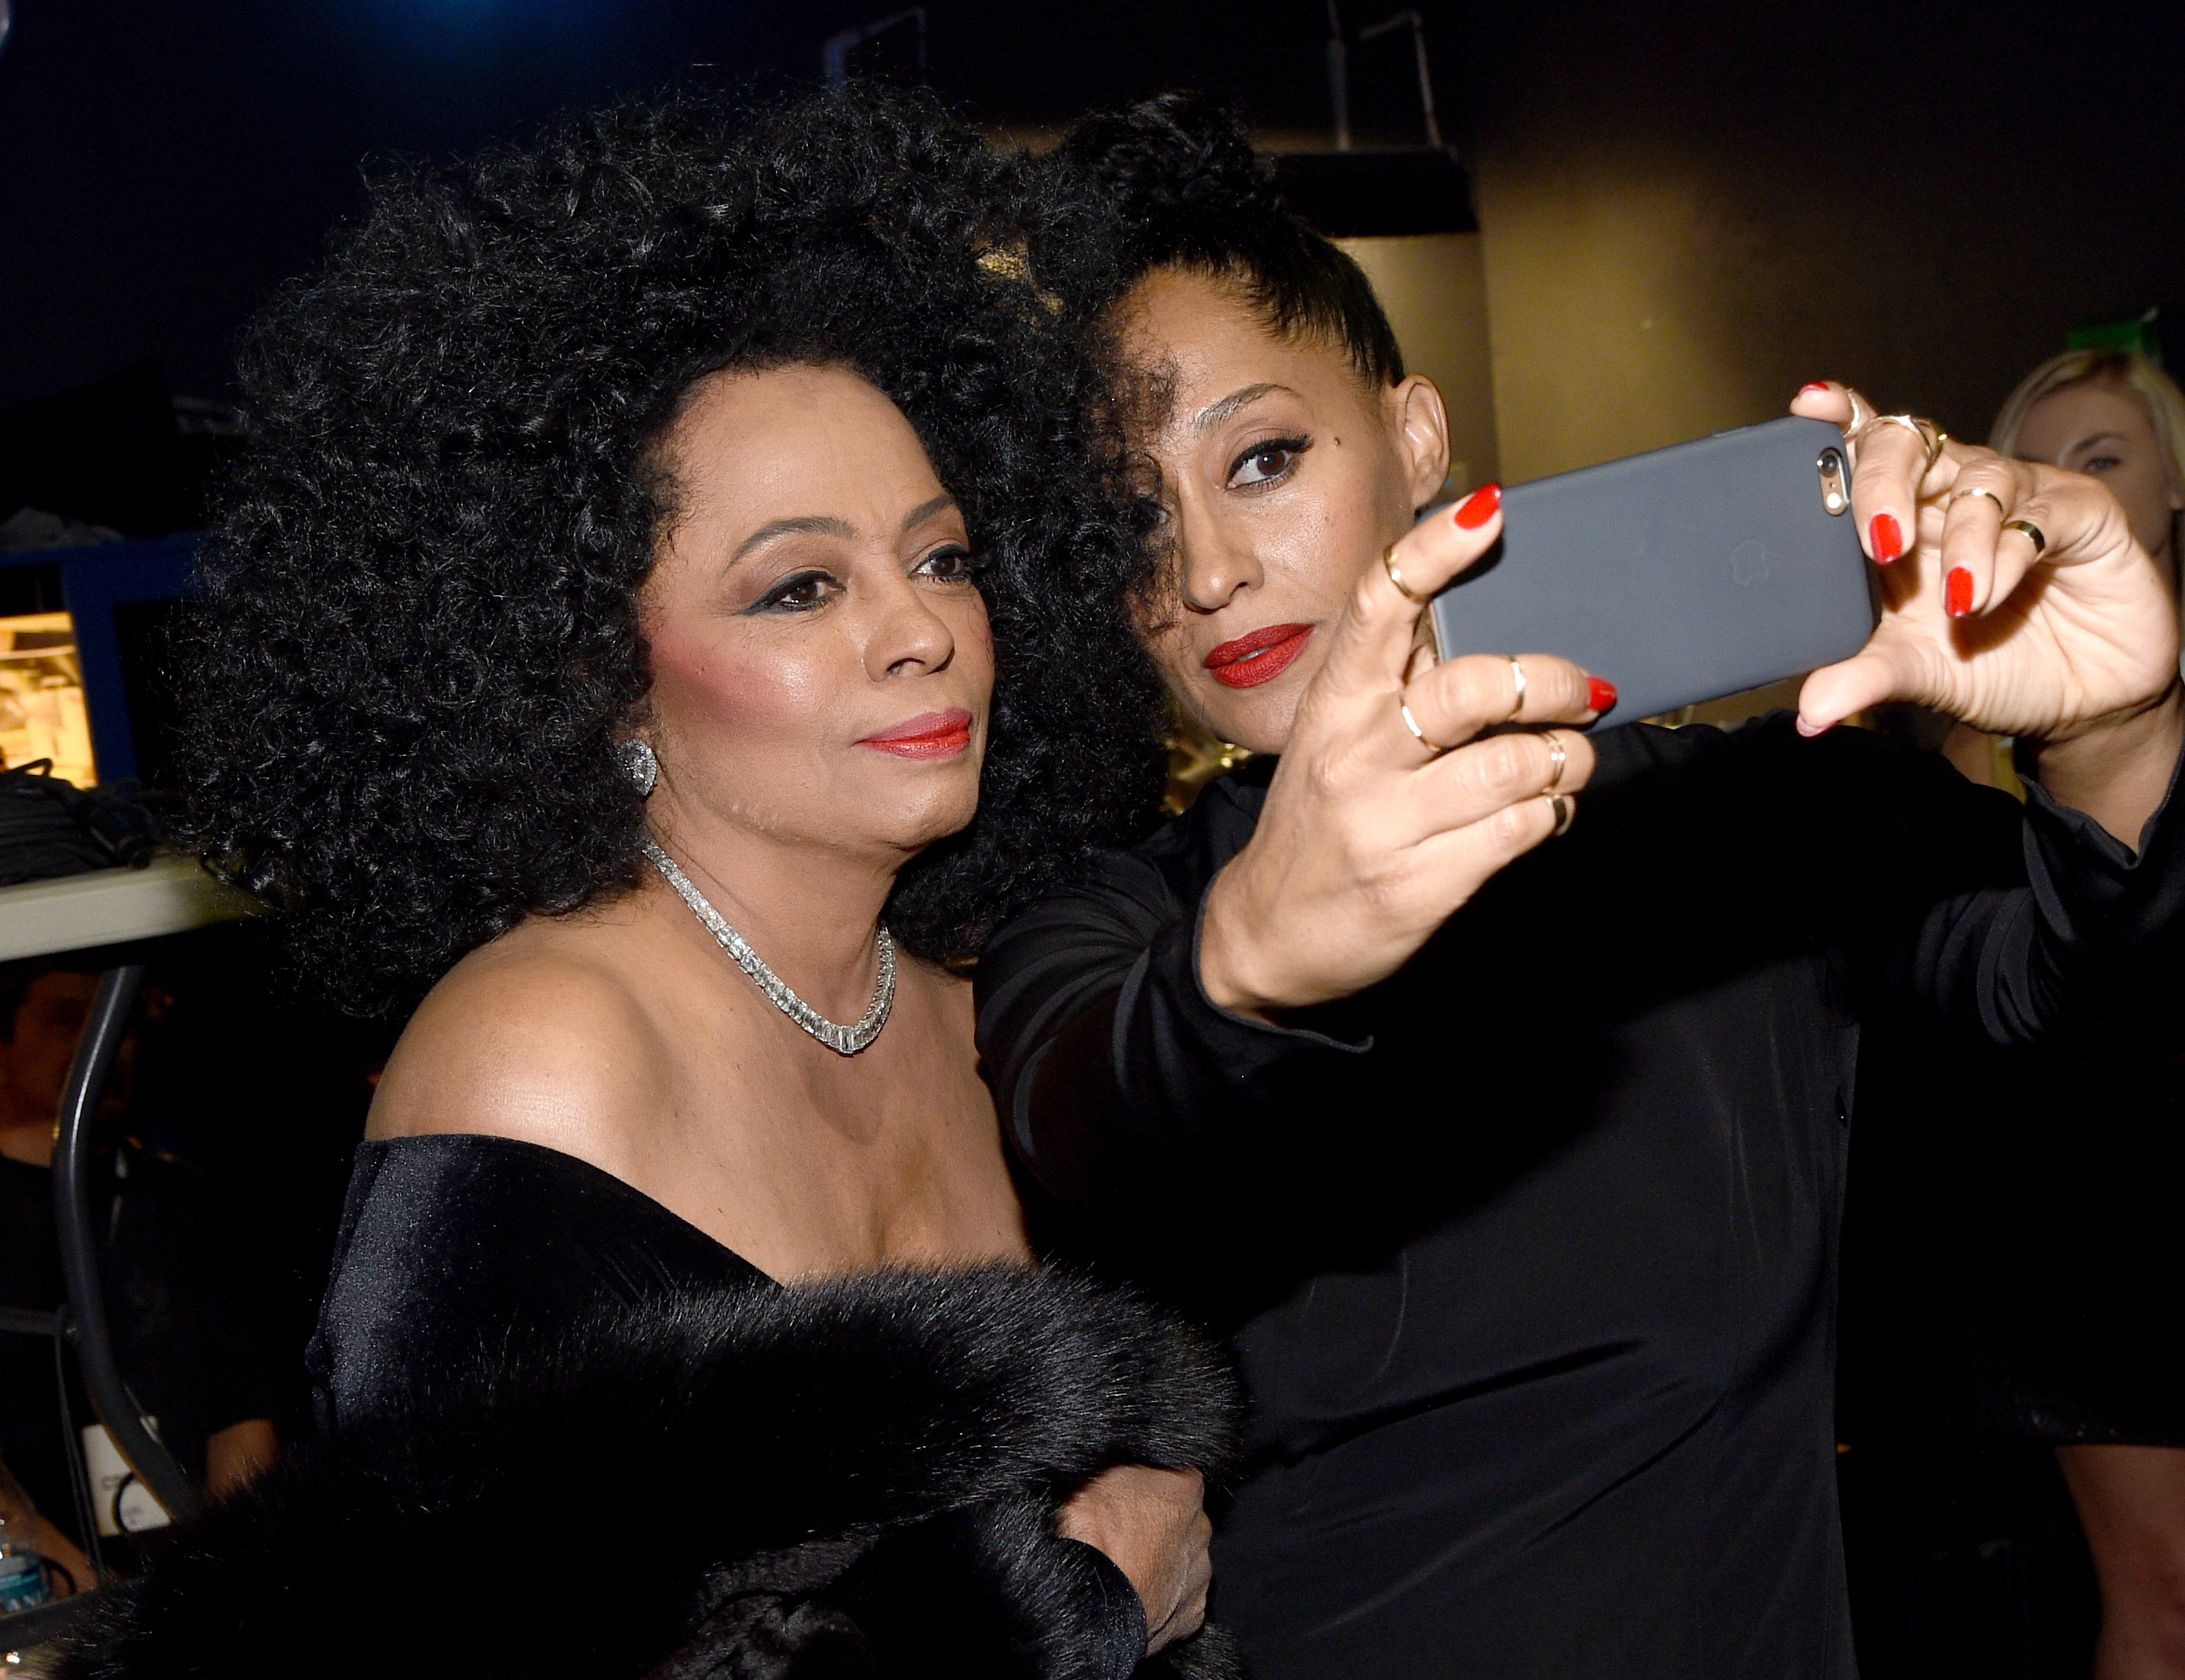 Diana Ross celebrated daughter Tracee Ellis Ross' Emmy nod in the sweetest way